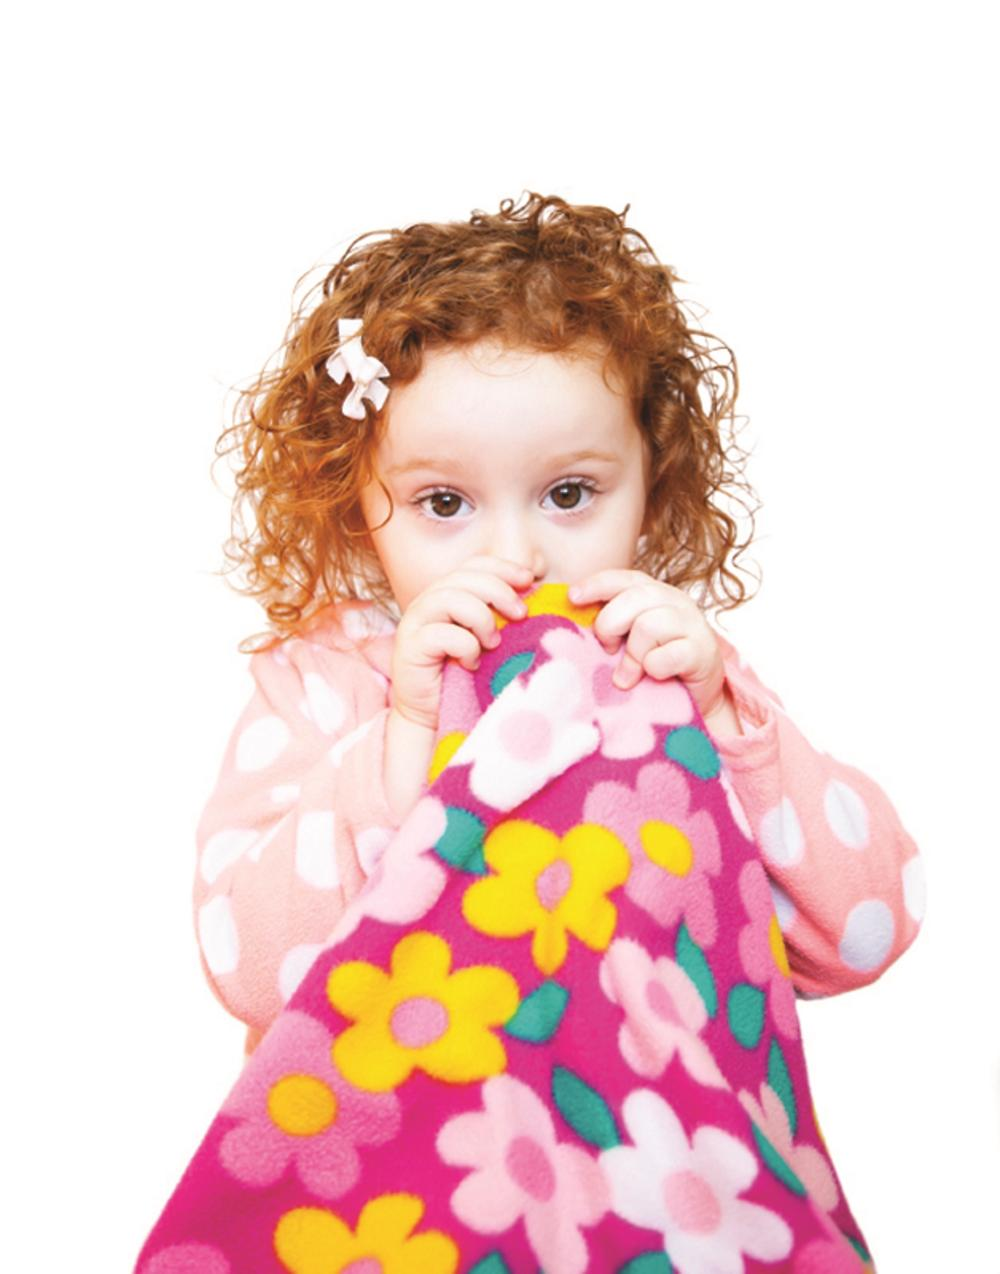 Does my 4-year-old have to give up her security blanket?